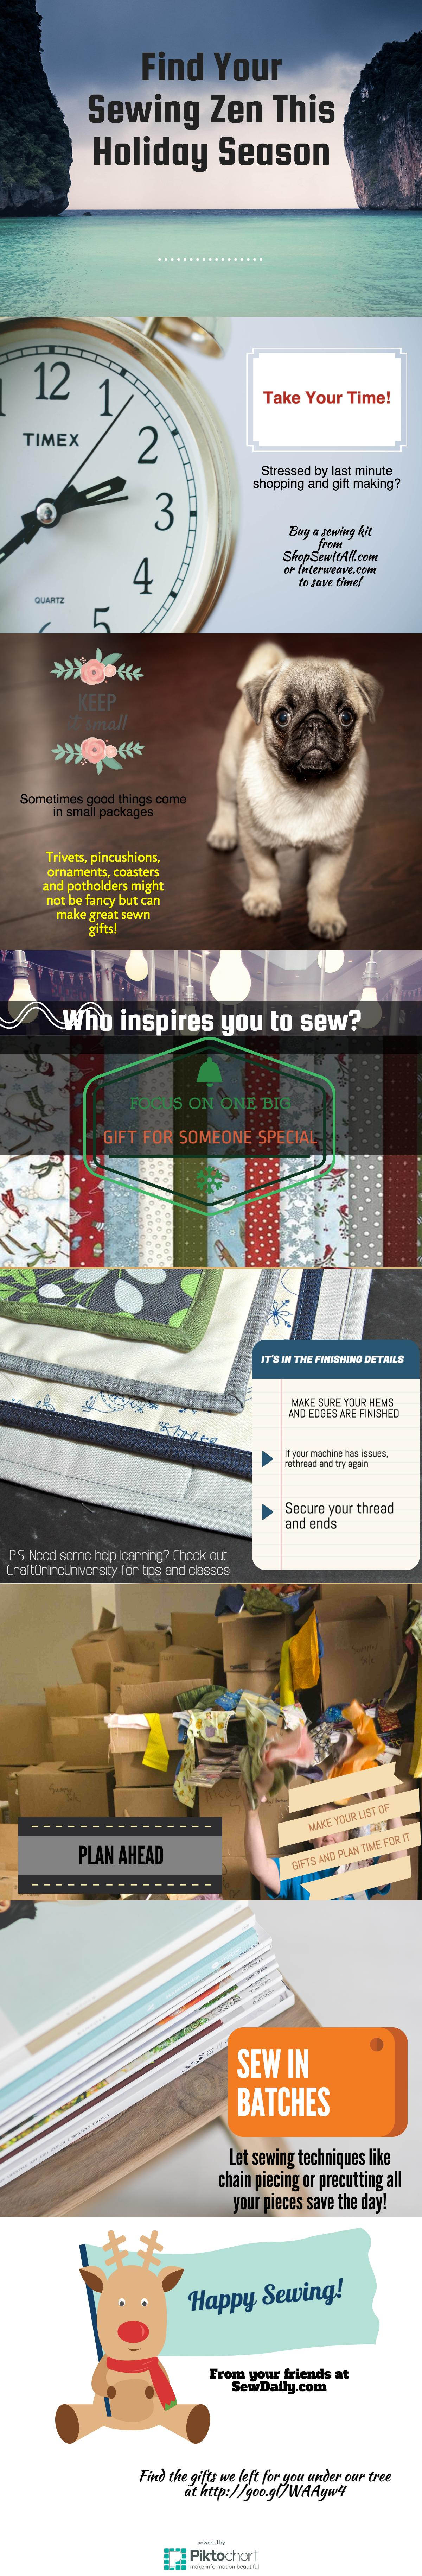 Holiday Sewing Zen from Sew Daily!